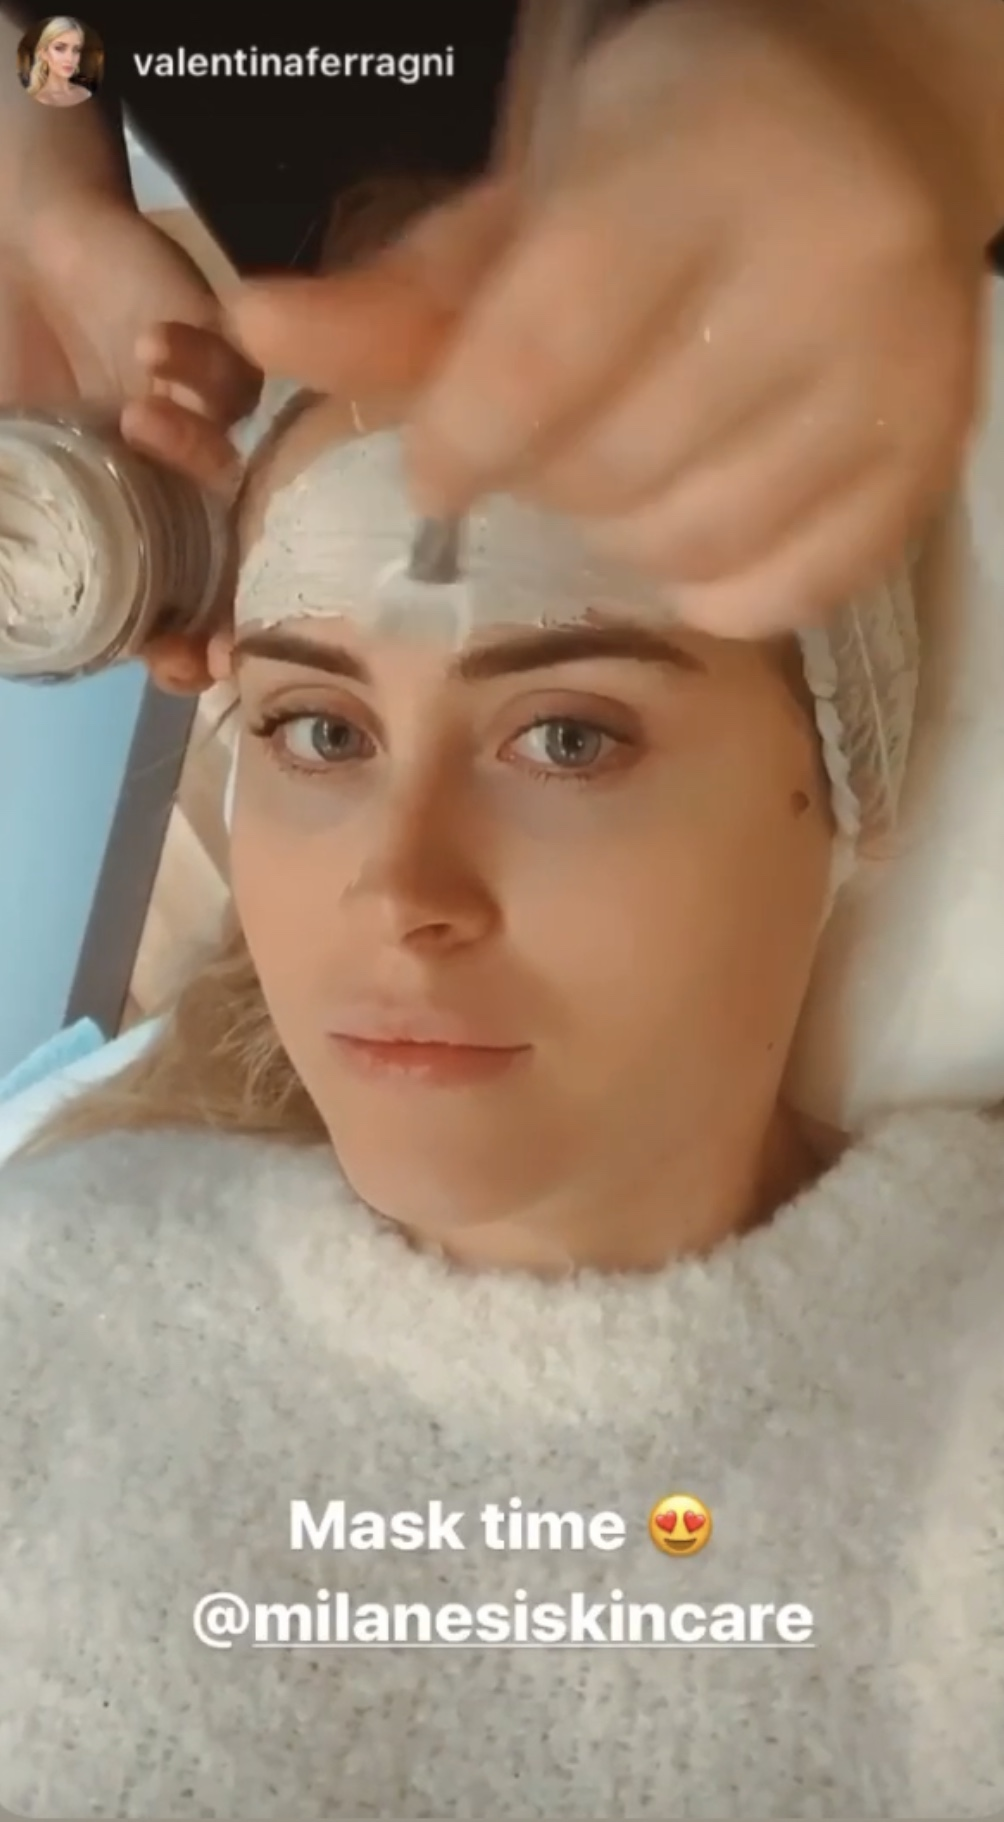 Valentina Ferragni using the purifying mask